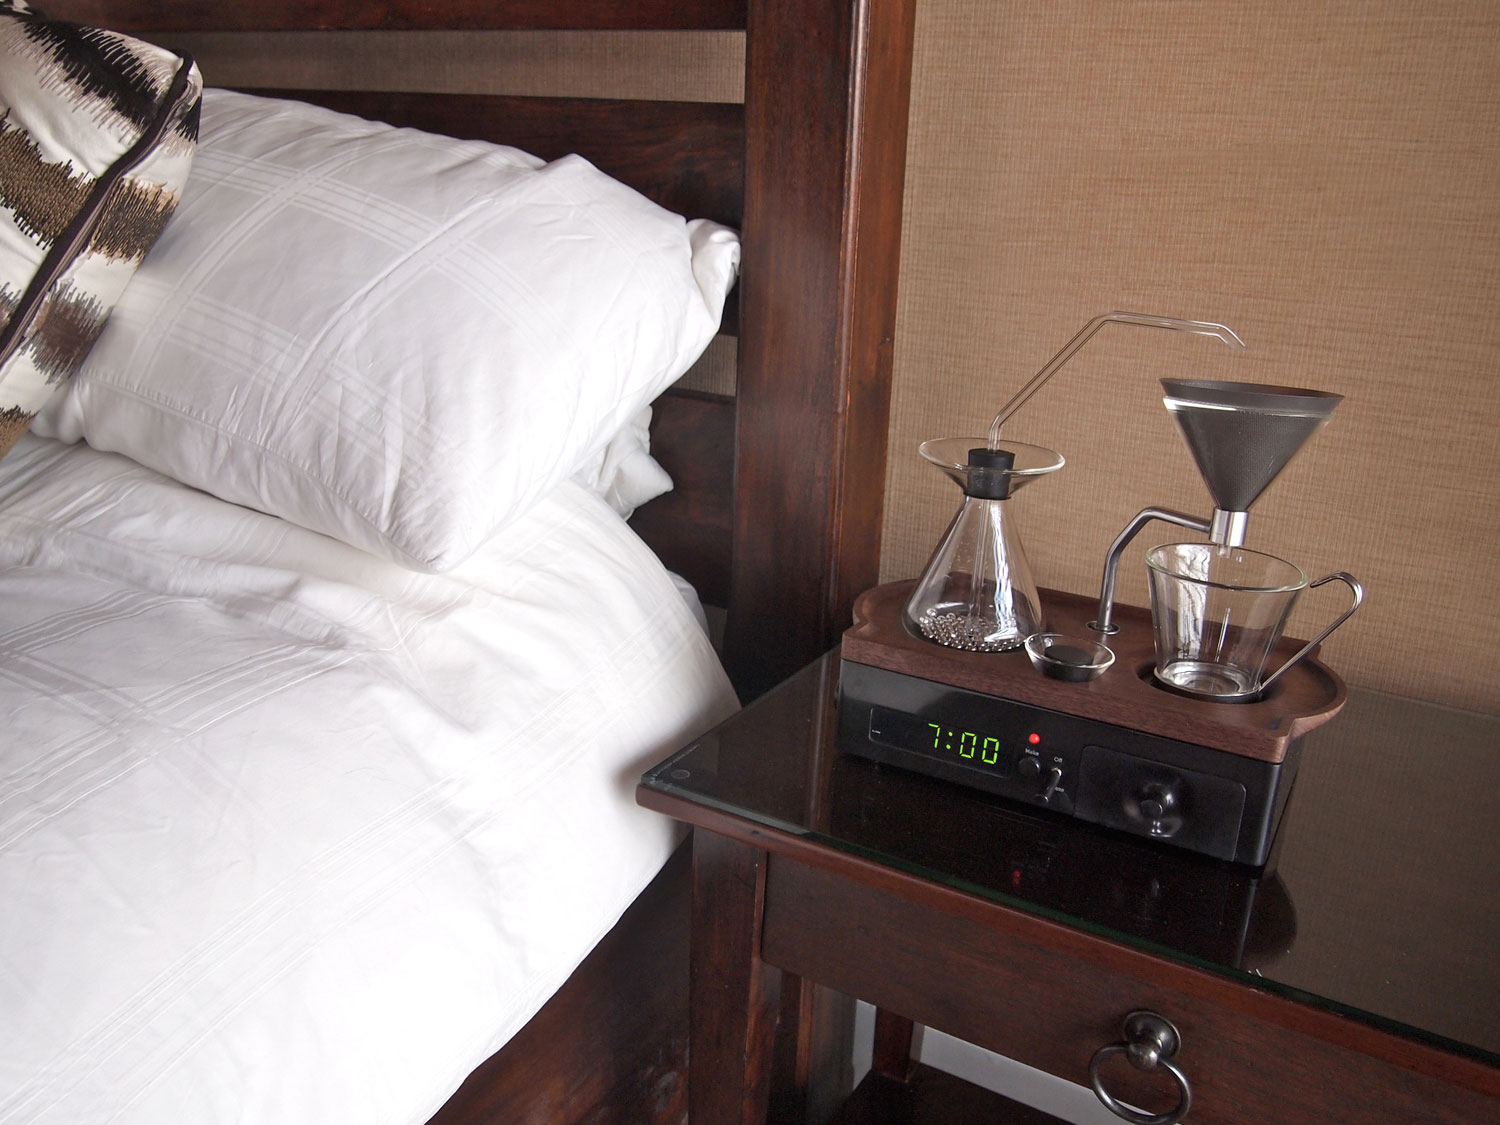 The Coffee Maker Alarm Clock Will Become a Reality Next Fall